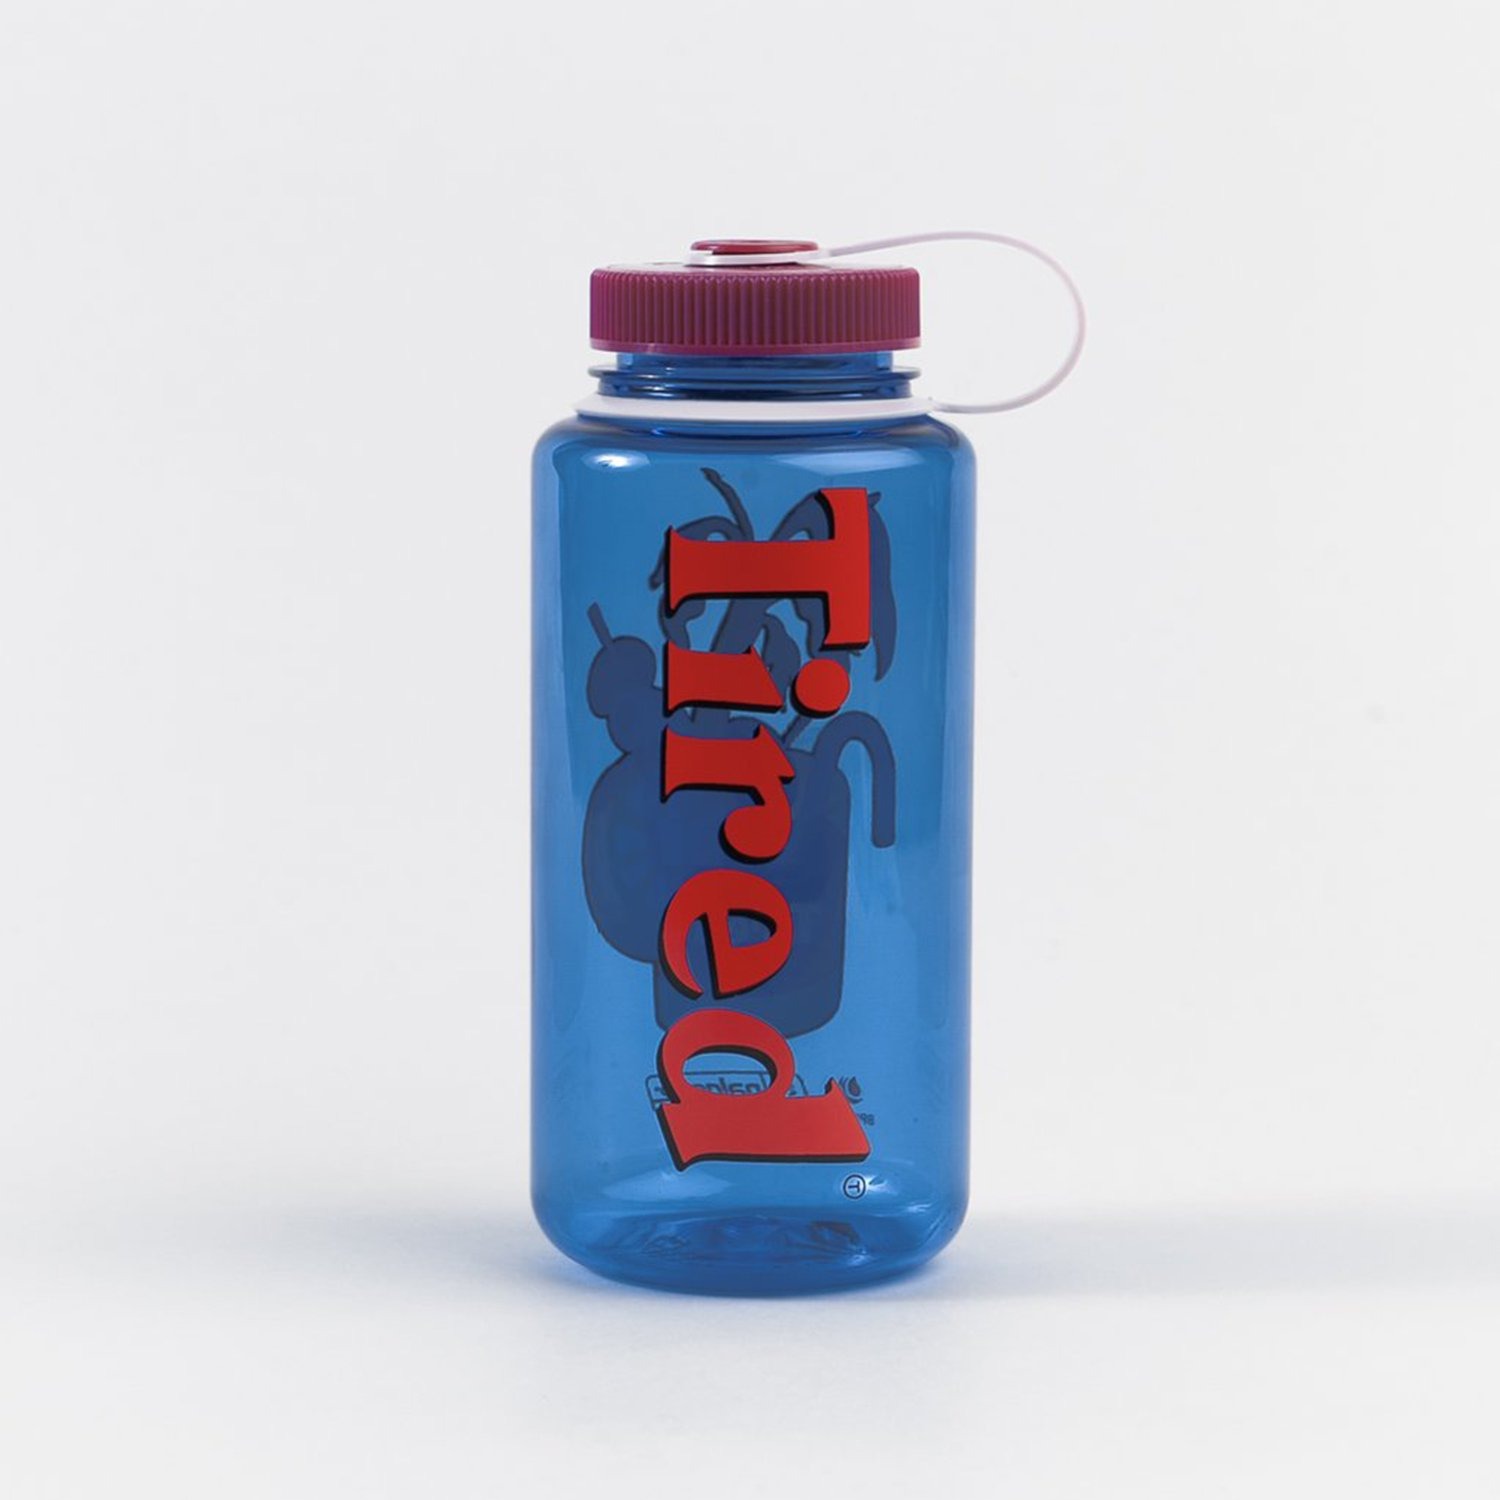 <img class='new_mark_img1' src='https://img.shop-pro.jp/img/new/icons8.gif' style='border:none;display:inline;margin:0px;padding:0px;width:auto;' />Tired タイレッド / BLOODY TIRED NALGENE WATER BOOTLE